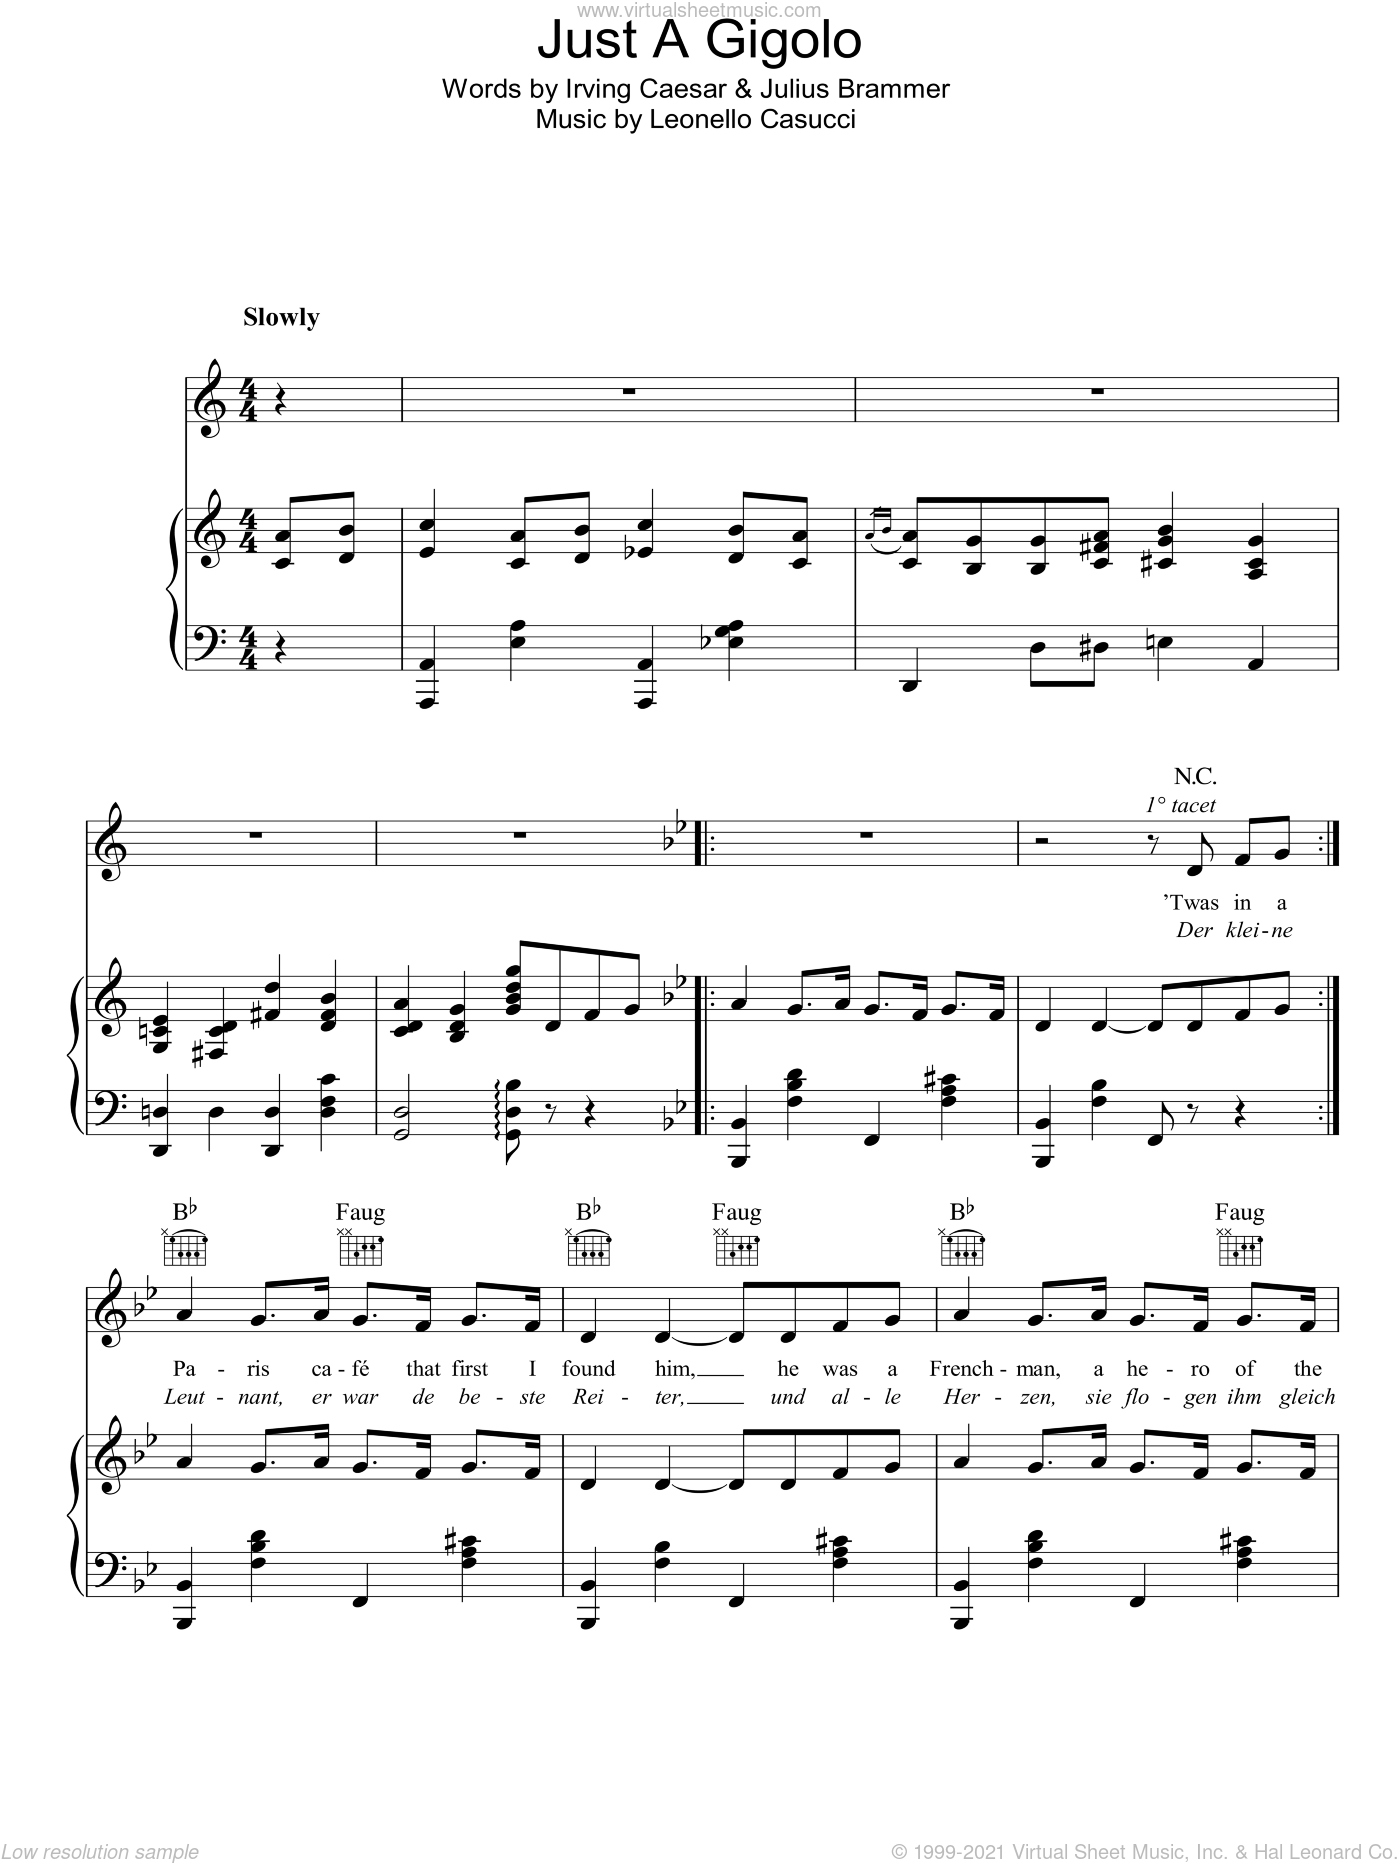 Just A Gigolo sheet music for voice, piano or guitar by Bing Crosby, Leonello Casucci, Irving Caesar and Julius Brammer, intermediate skill level